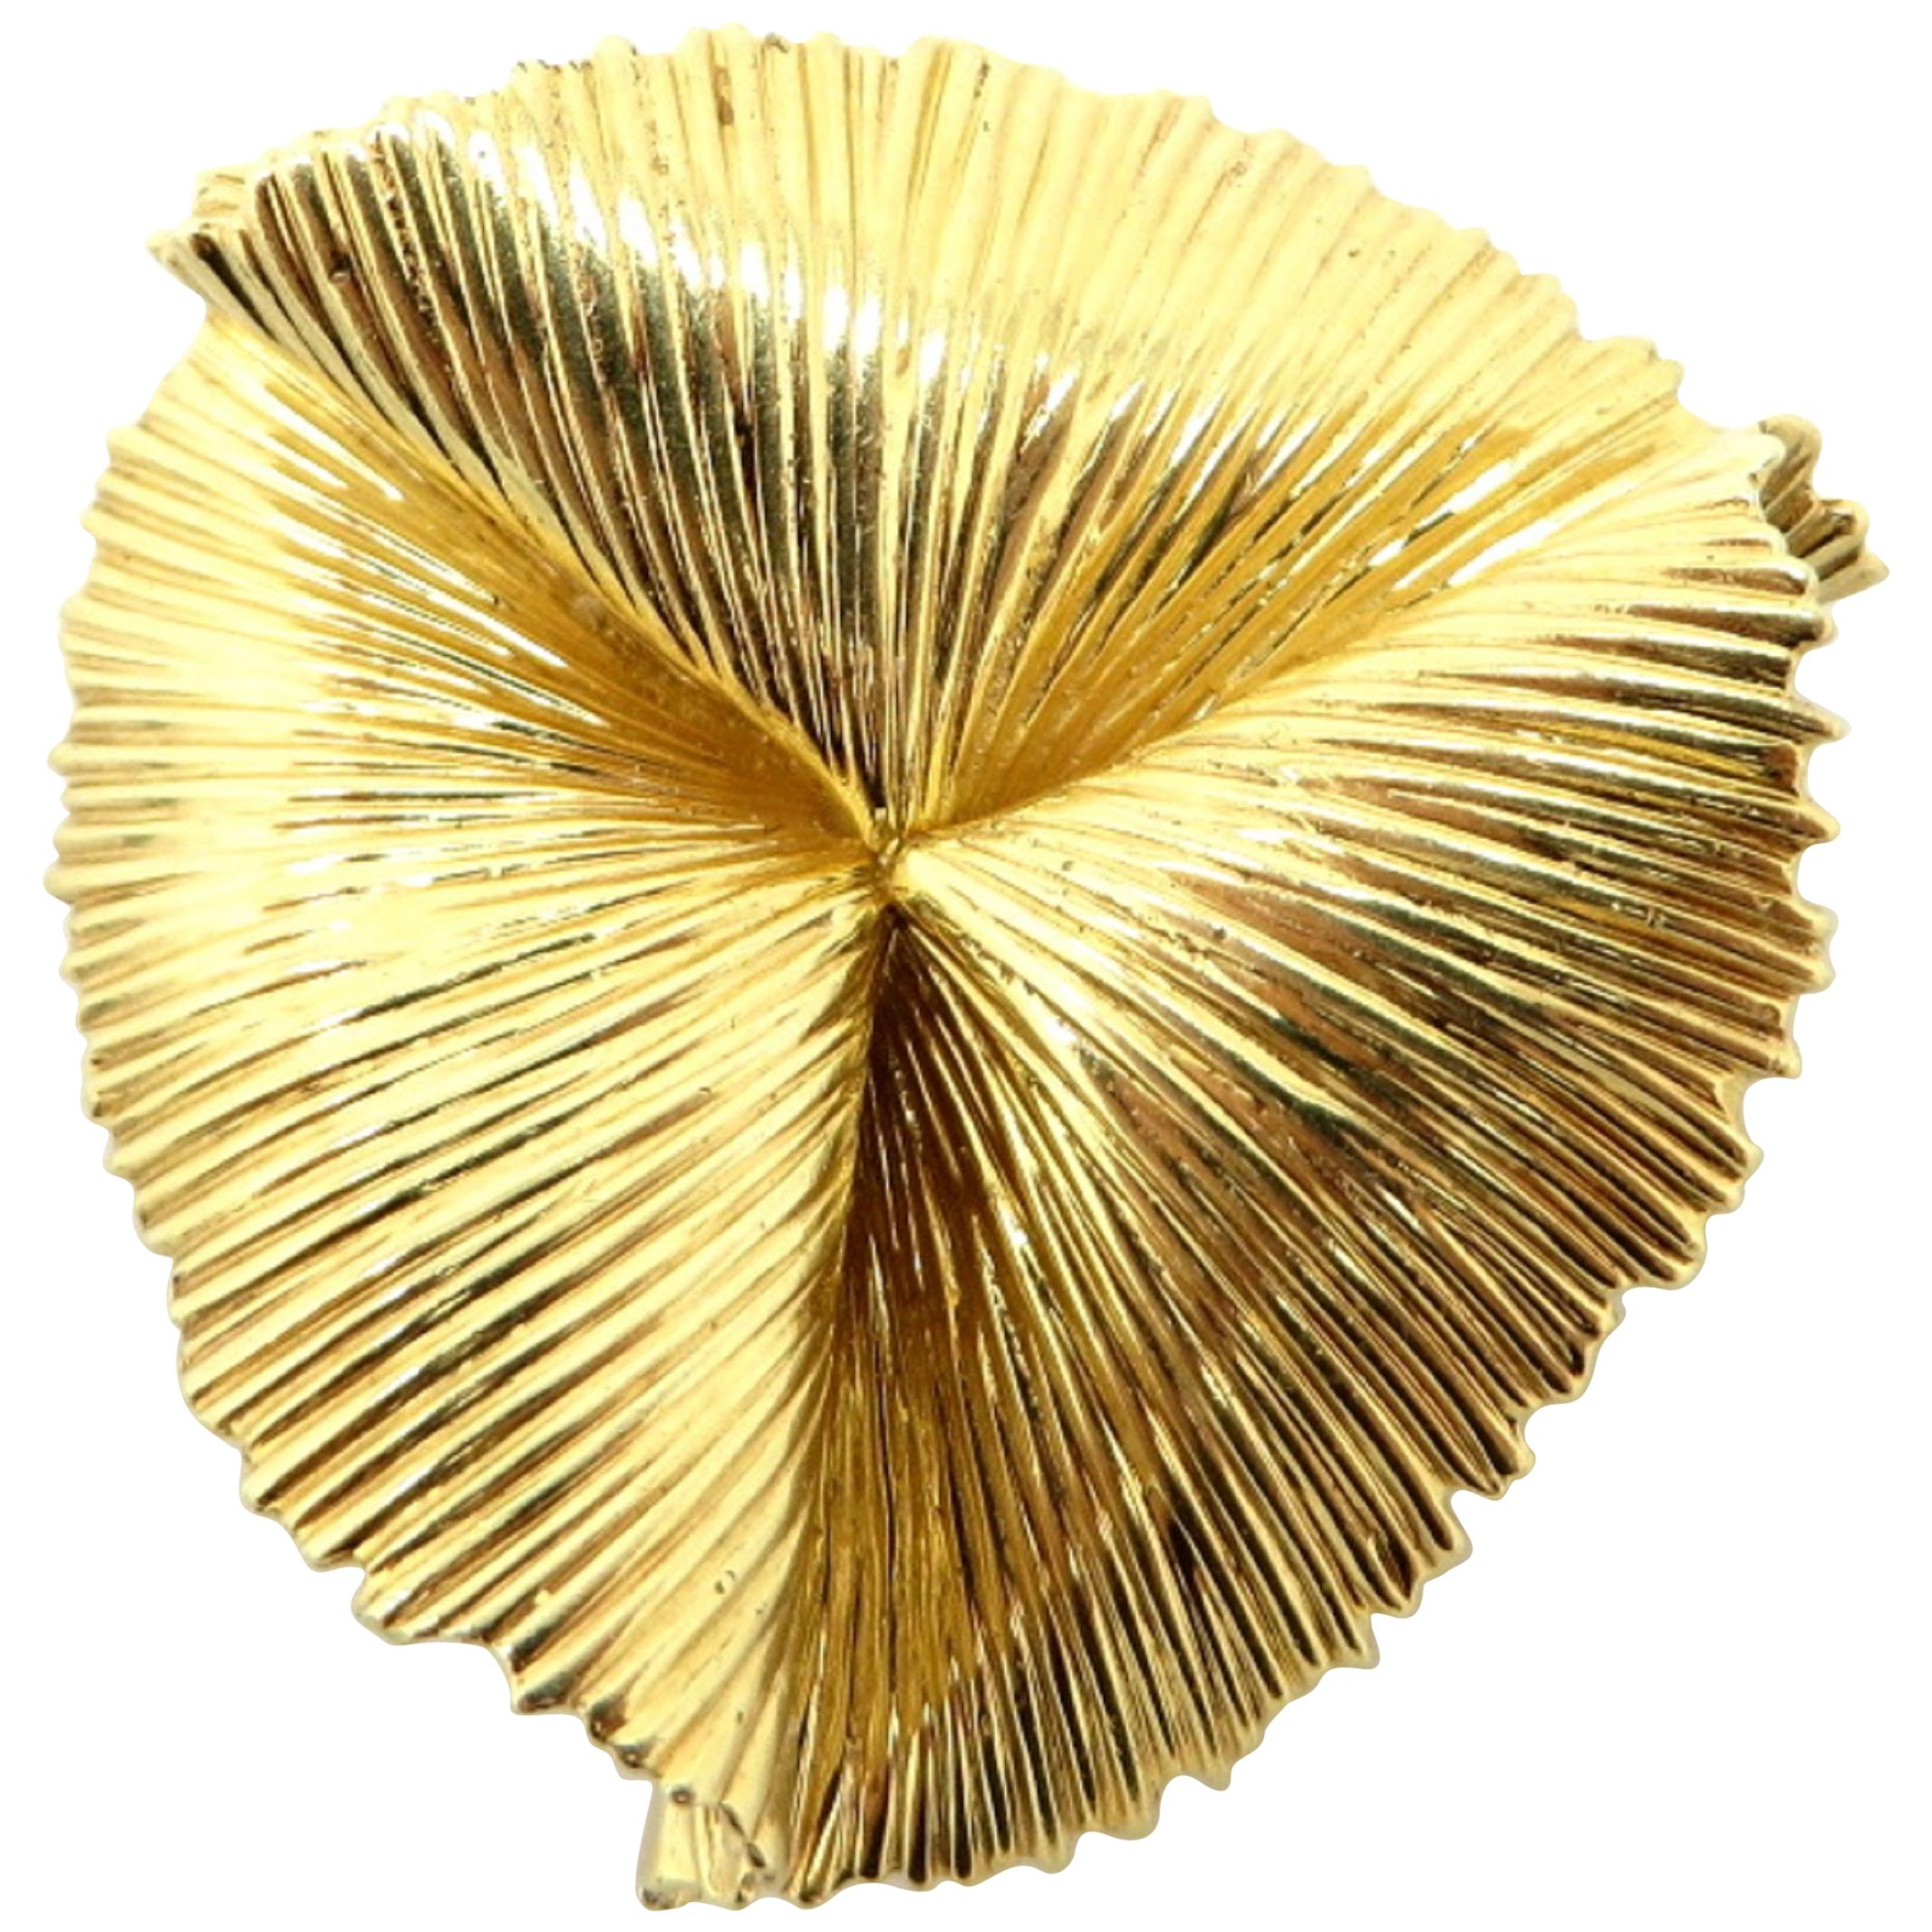 6787d0cdf Valentin Magro Rope and Wire Overlapped Brooch For Sale at 1stdibs